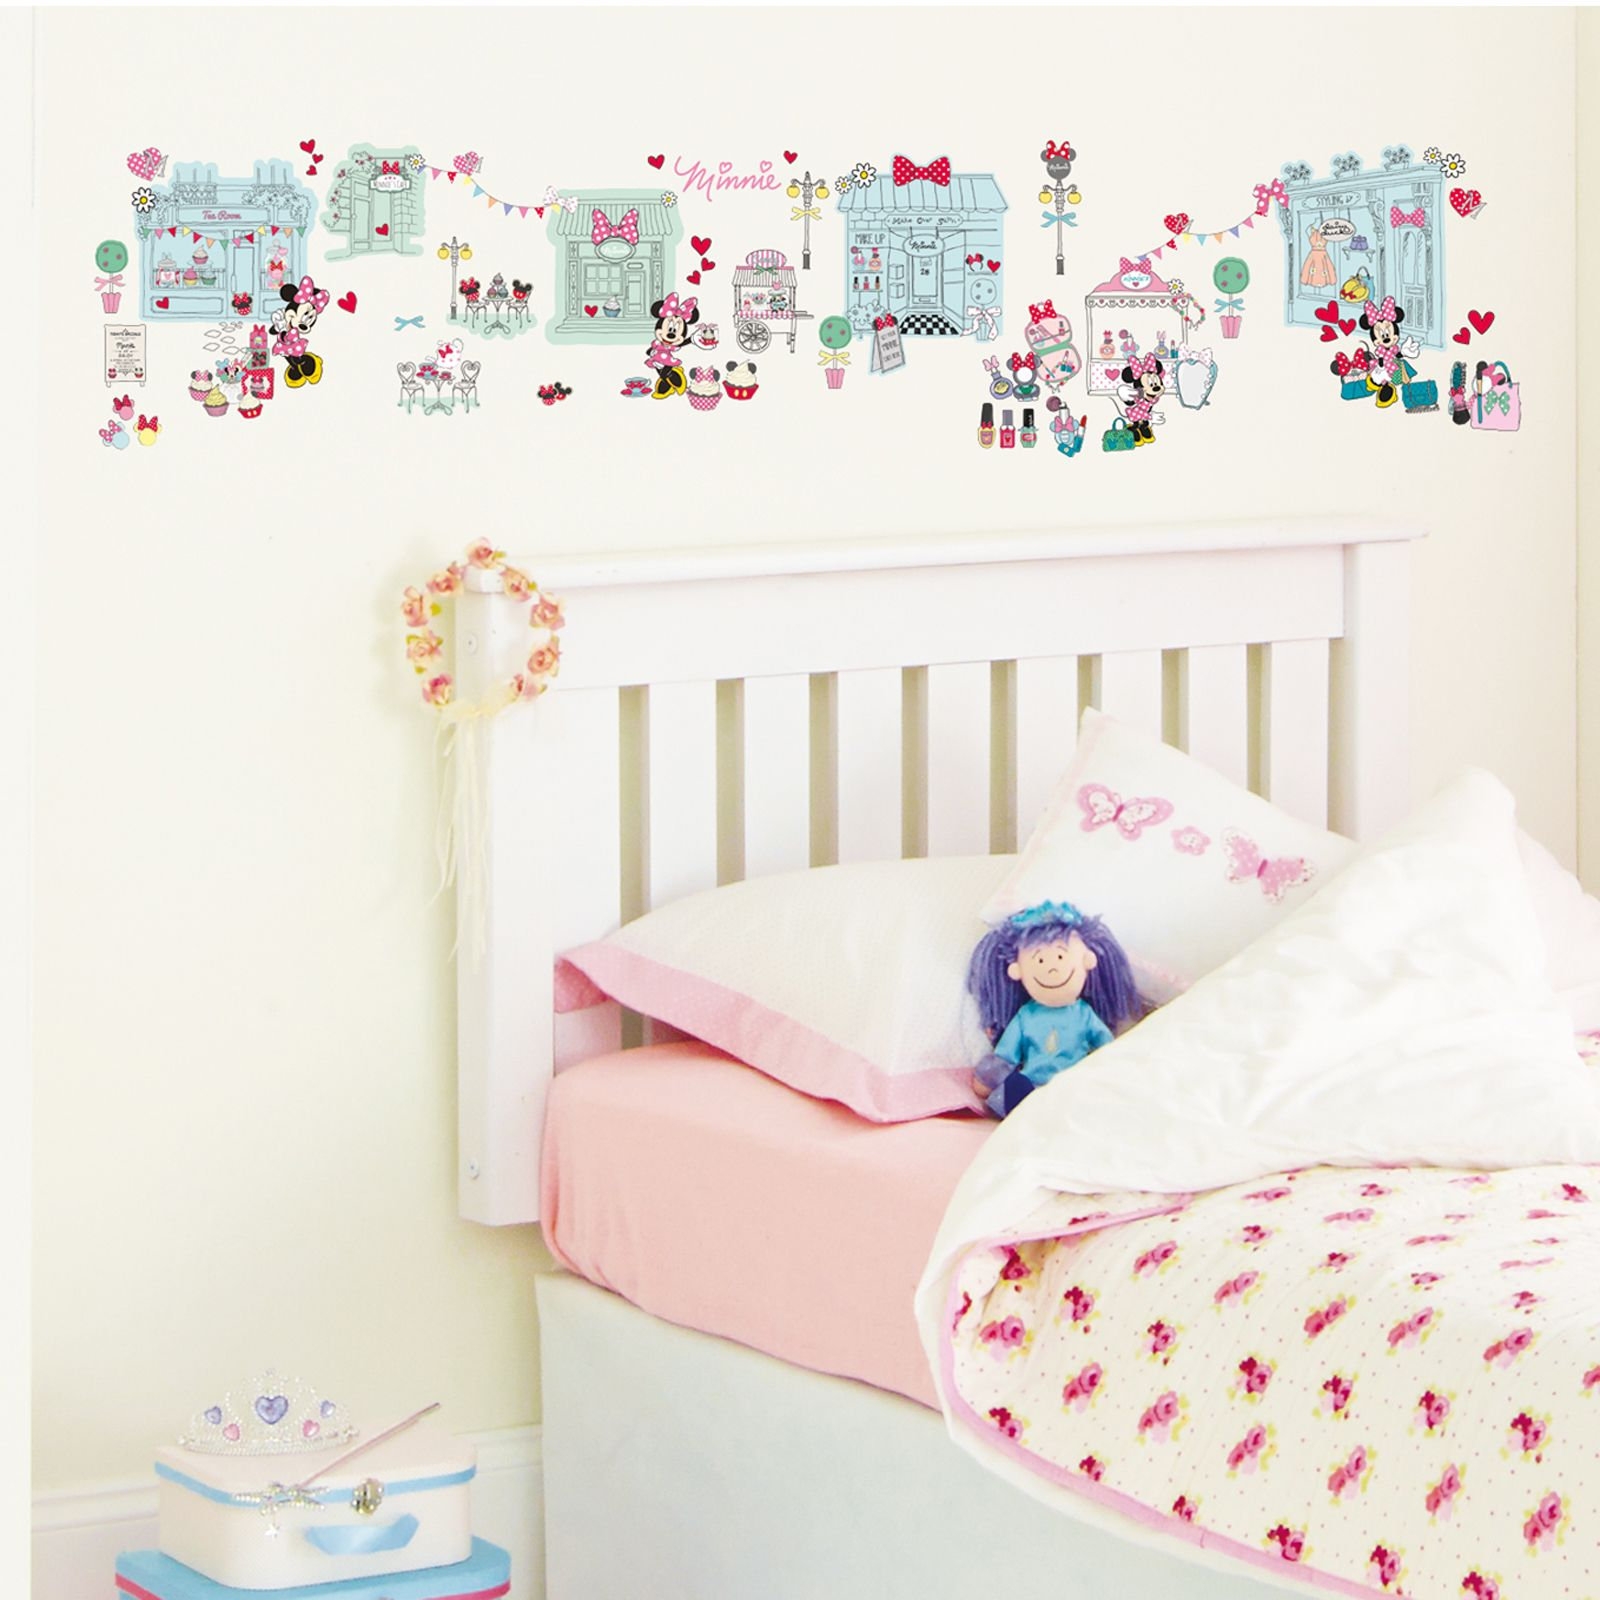 MINNIE MOUSE 39 STICK A STORY 39 100 WALL STICKERS BEDROOM DECOR EBay